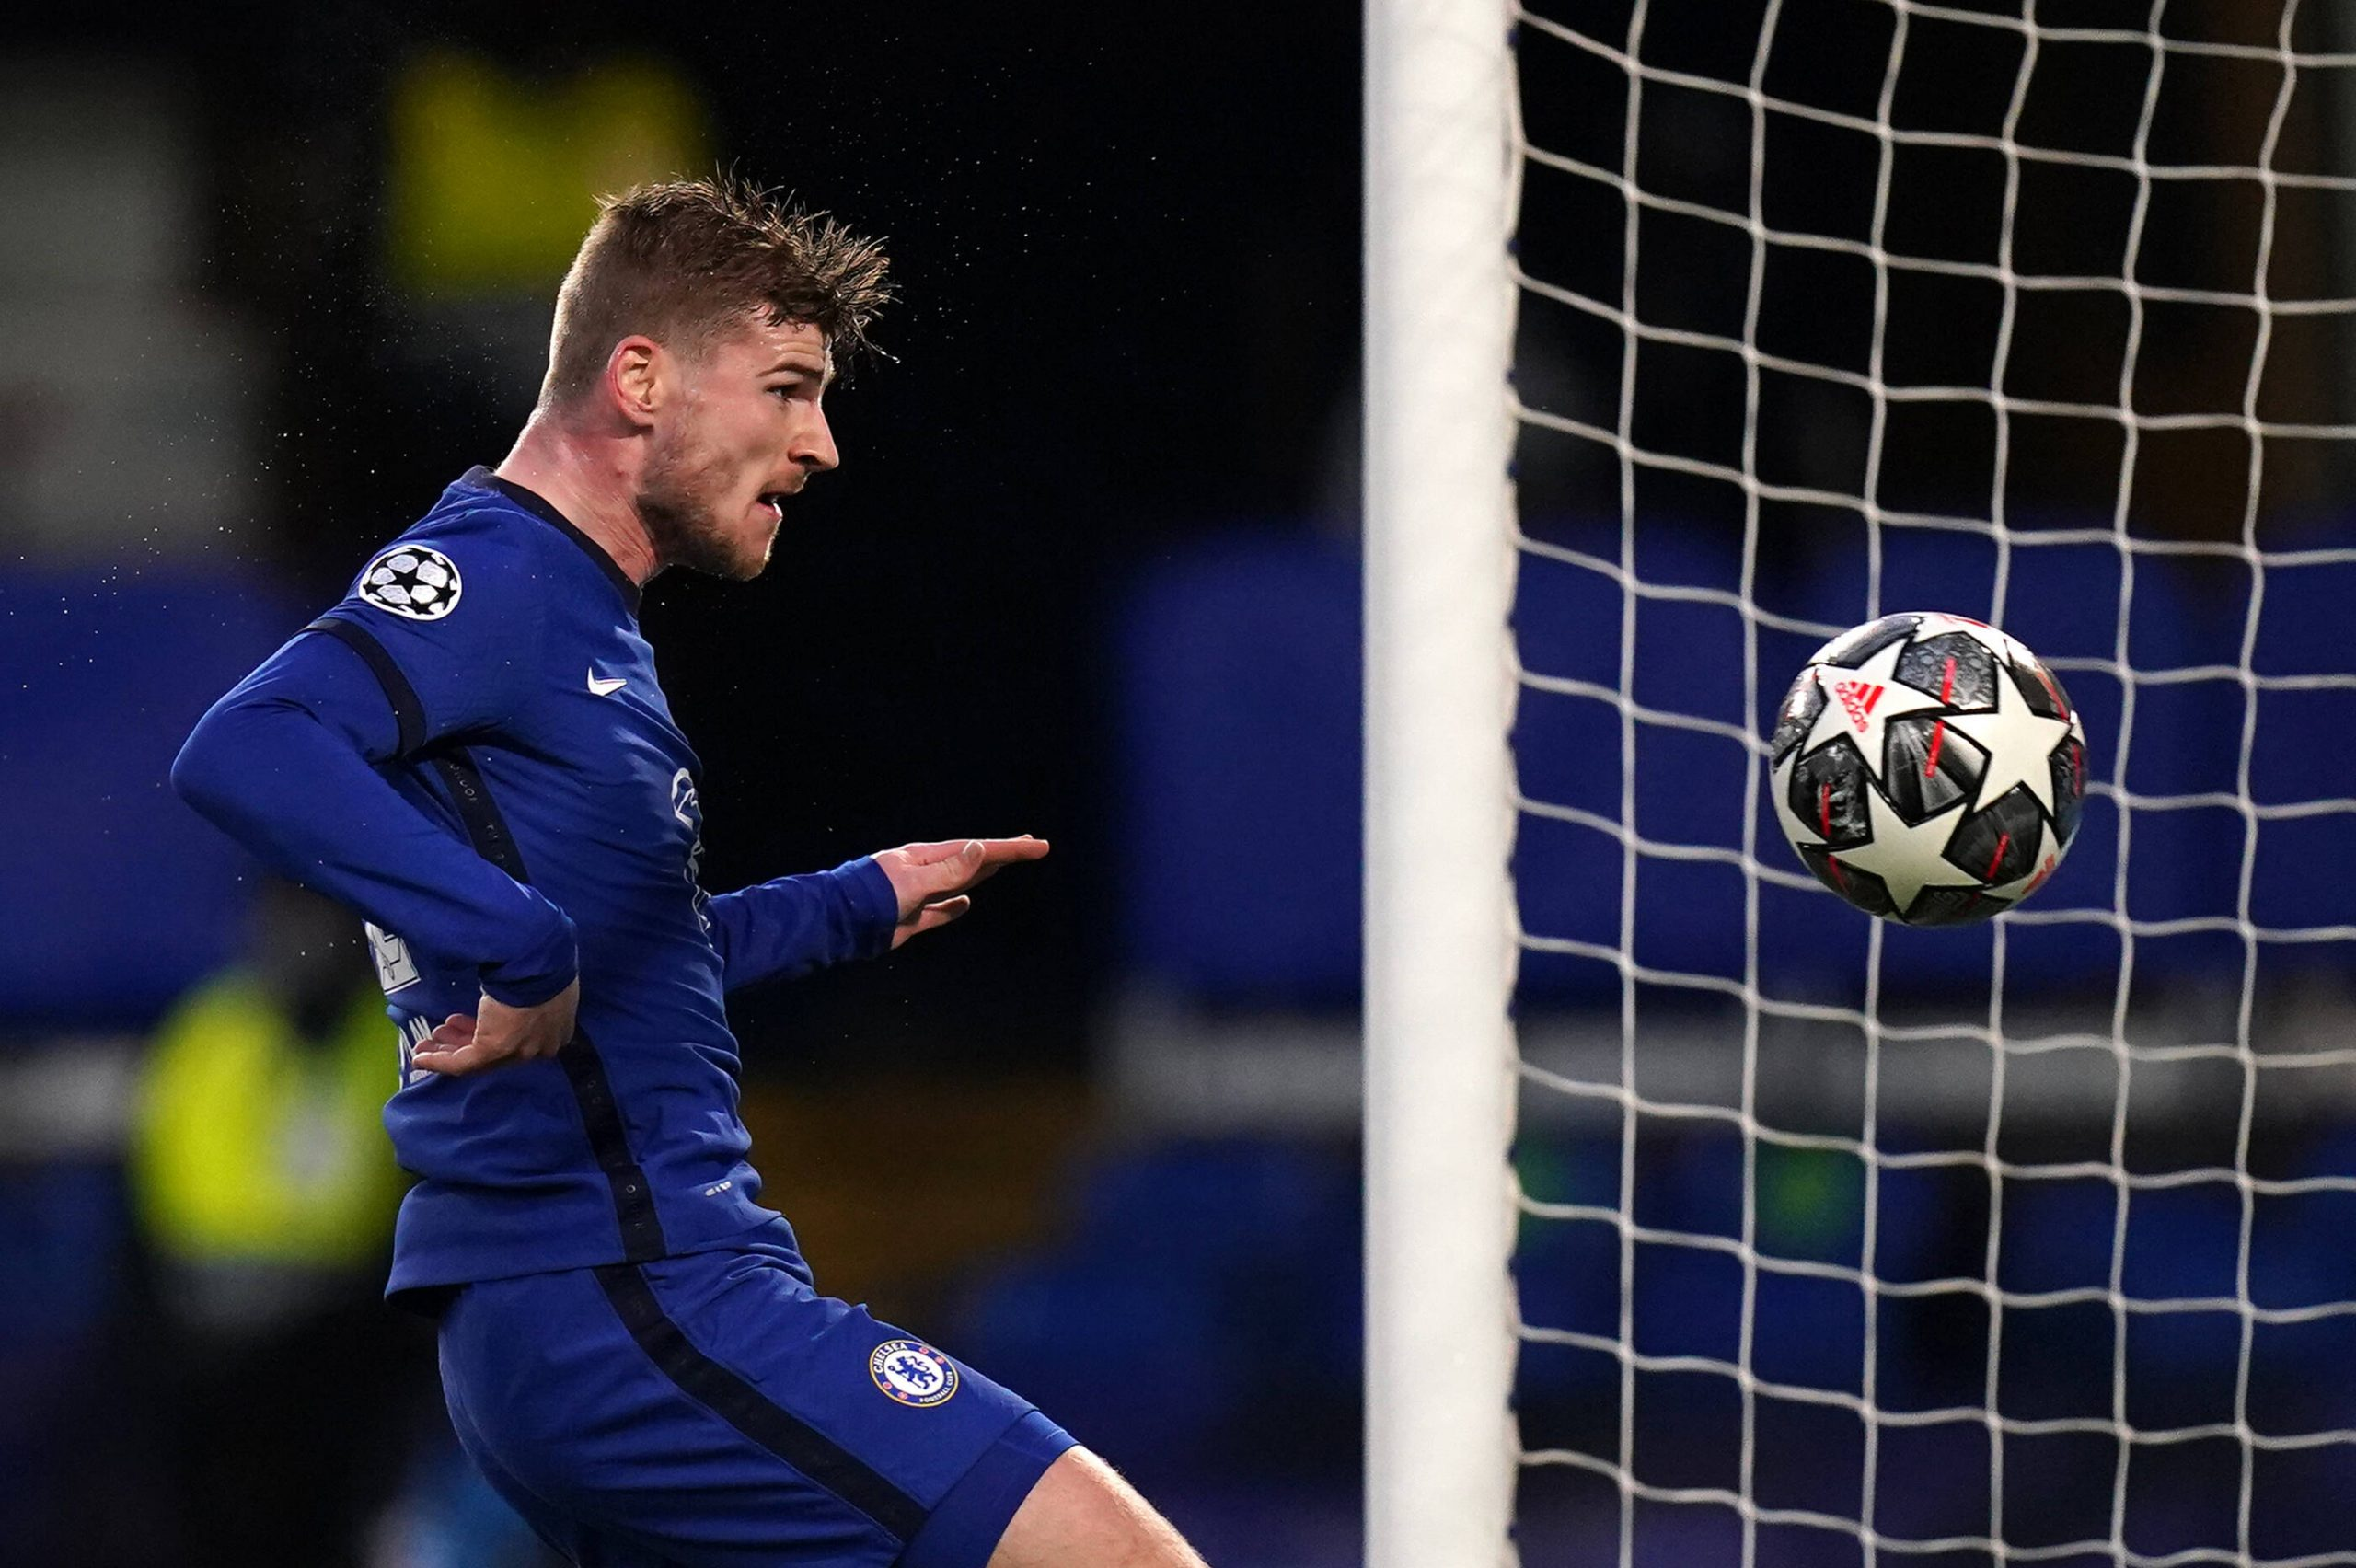 Timo Werner for Chelsea vs Real Madrid in the UEFA Champions League.